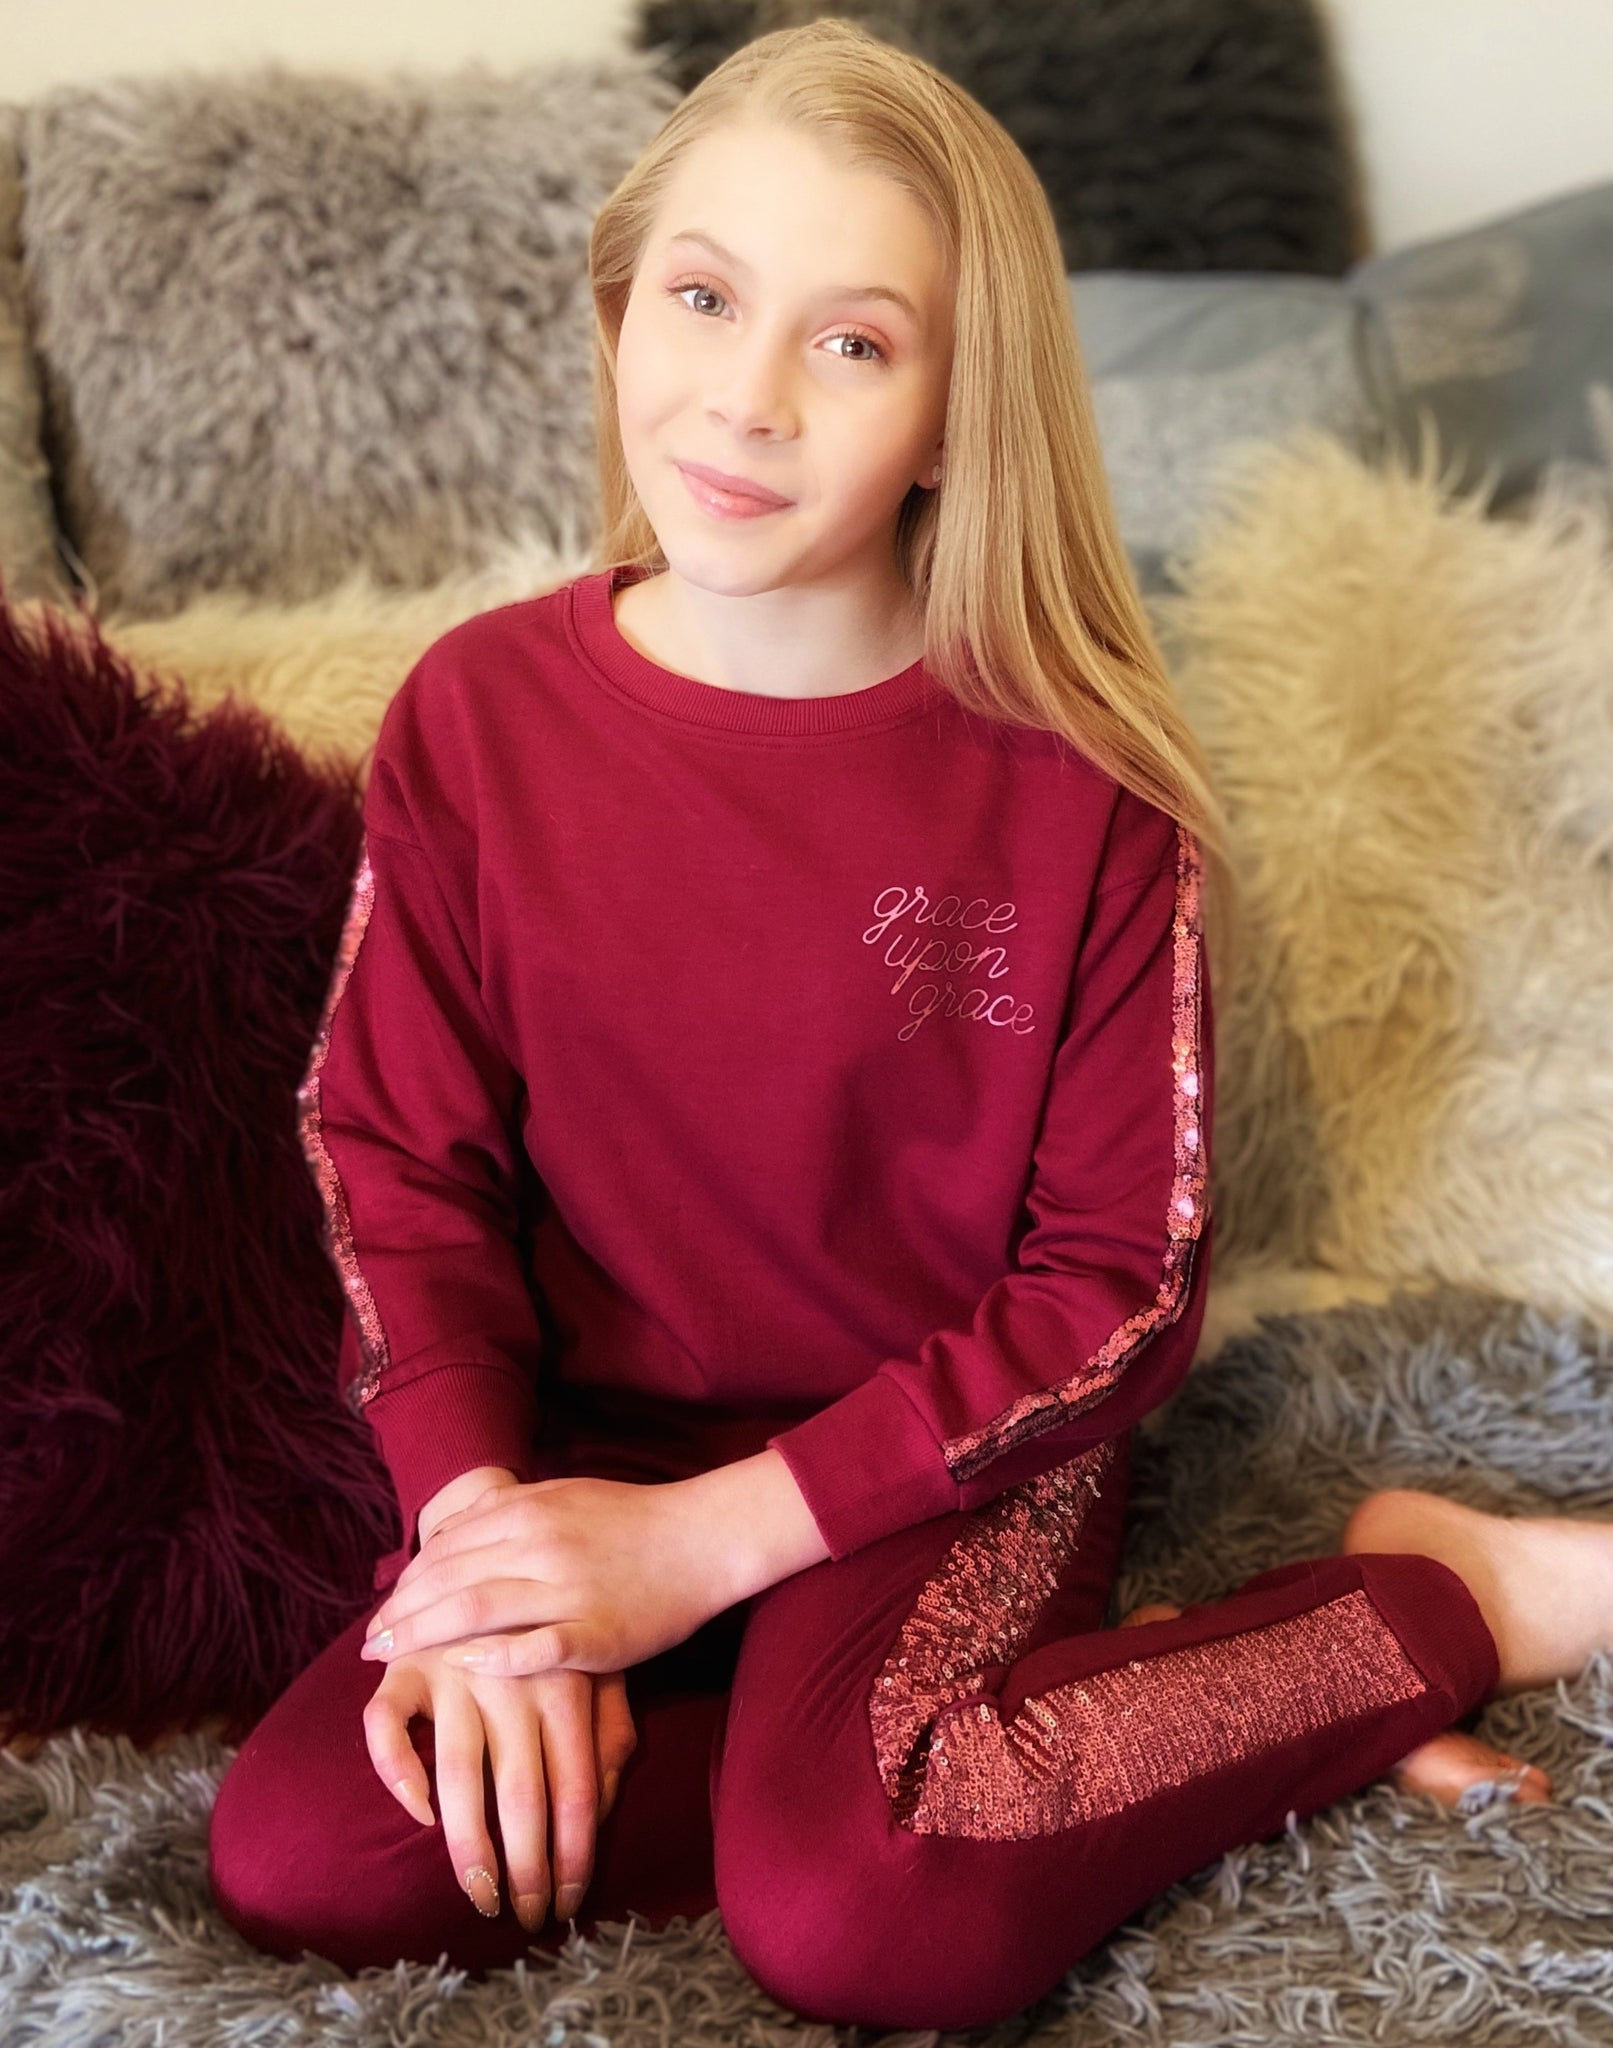 Grace Upon Grace Sequins Inset Sweatshirt